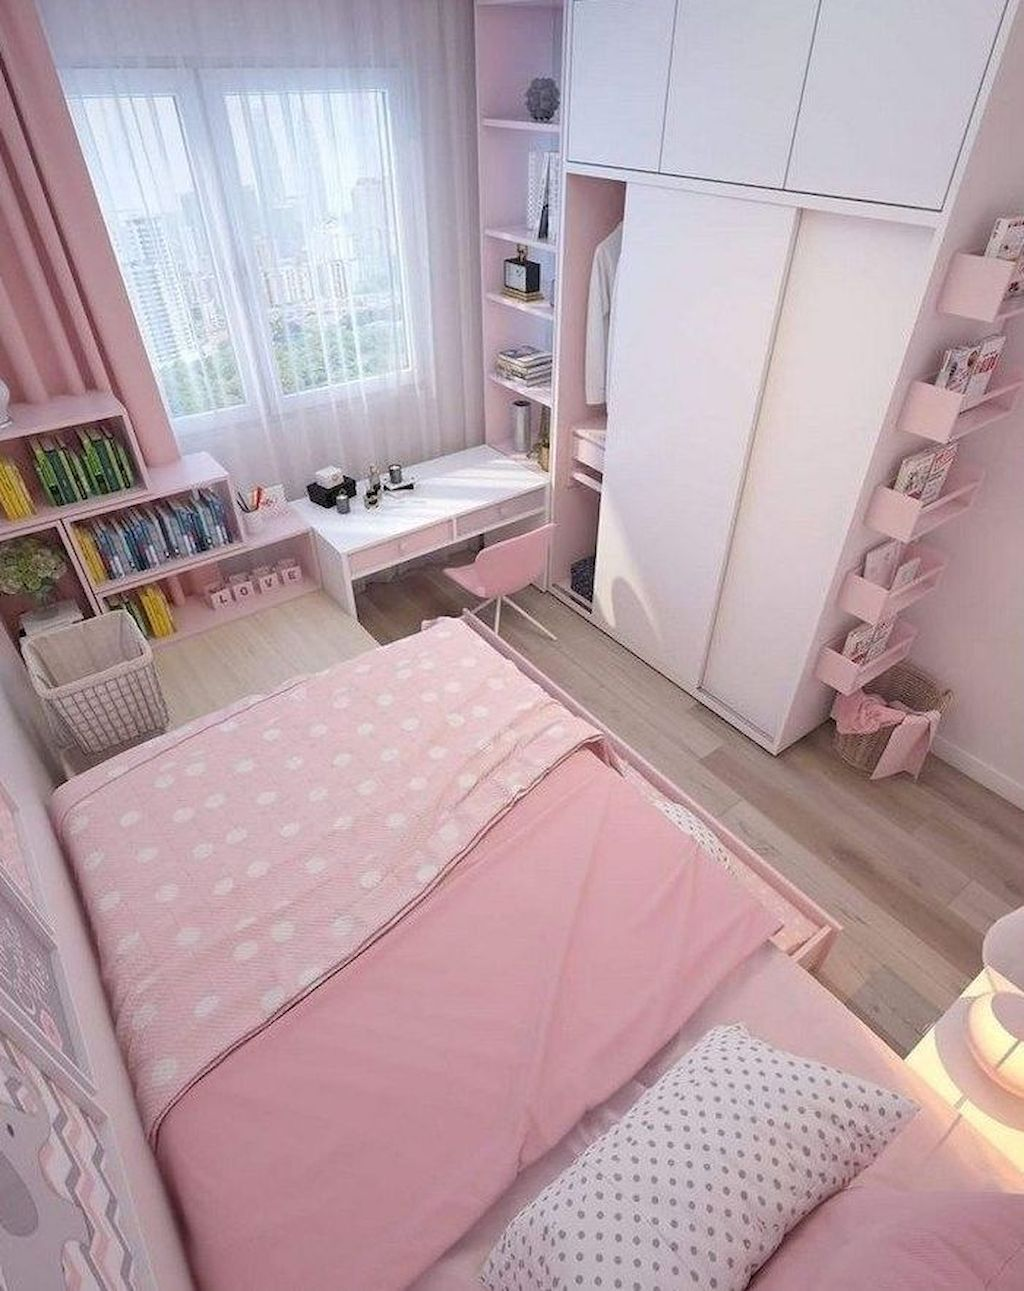 Sumptuous Simple Suggestions For Adorning Small Bedrooms Small Apartment Bedrooms Small Room Design Bedroom Apartment Bedroom Design Small bedroom ideas pink